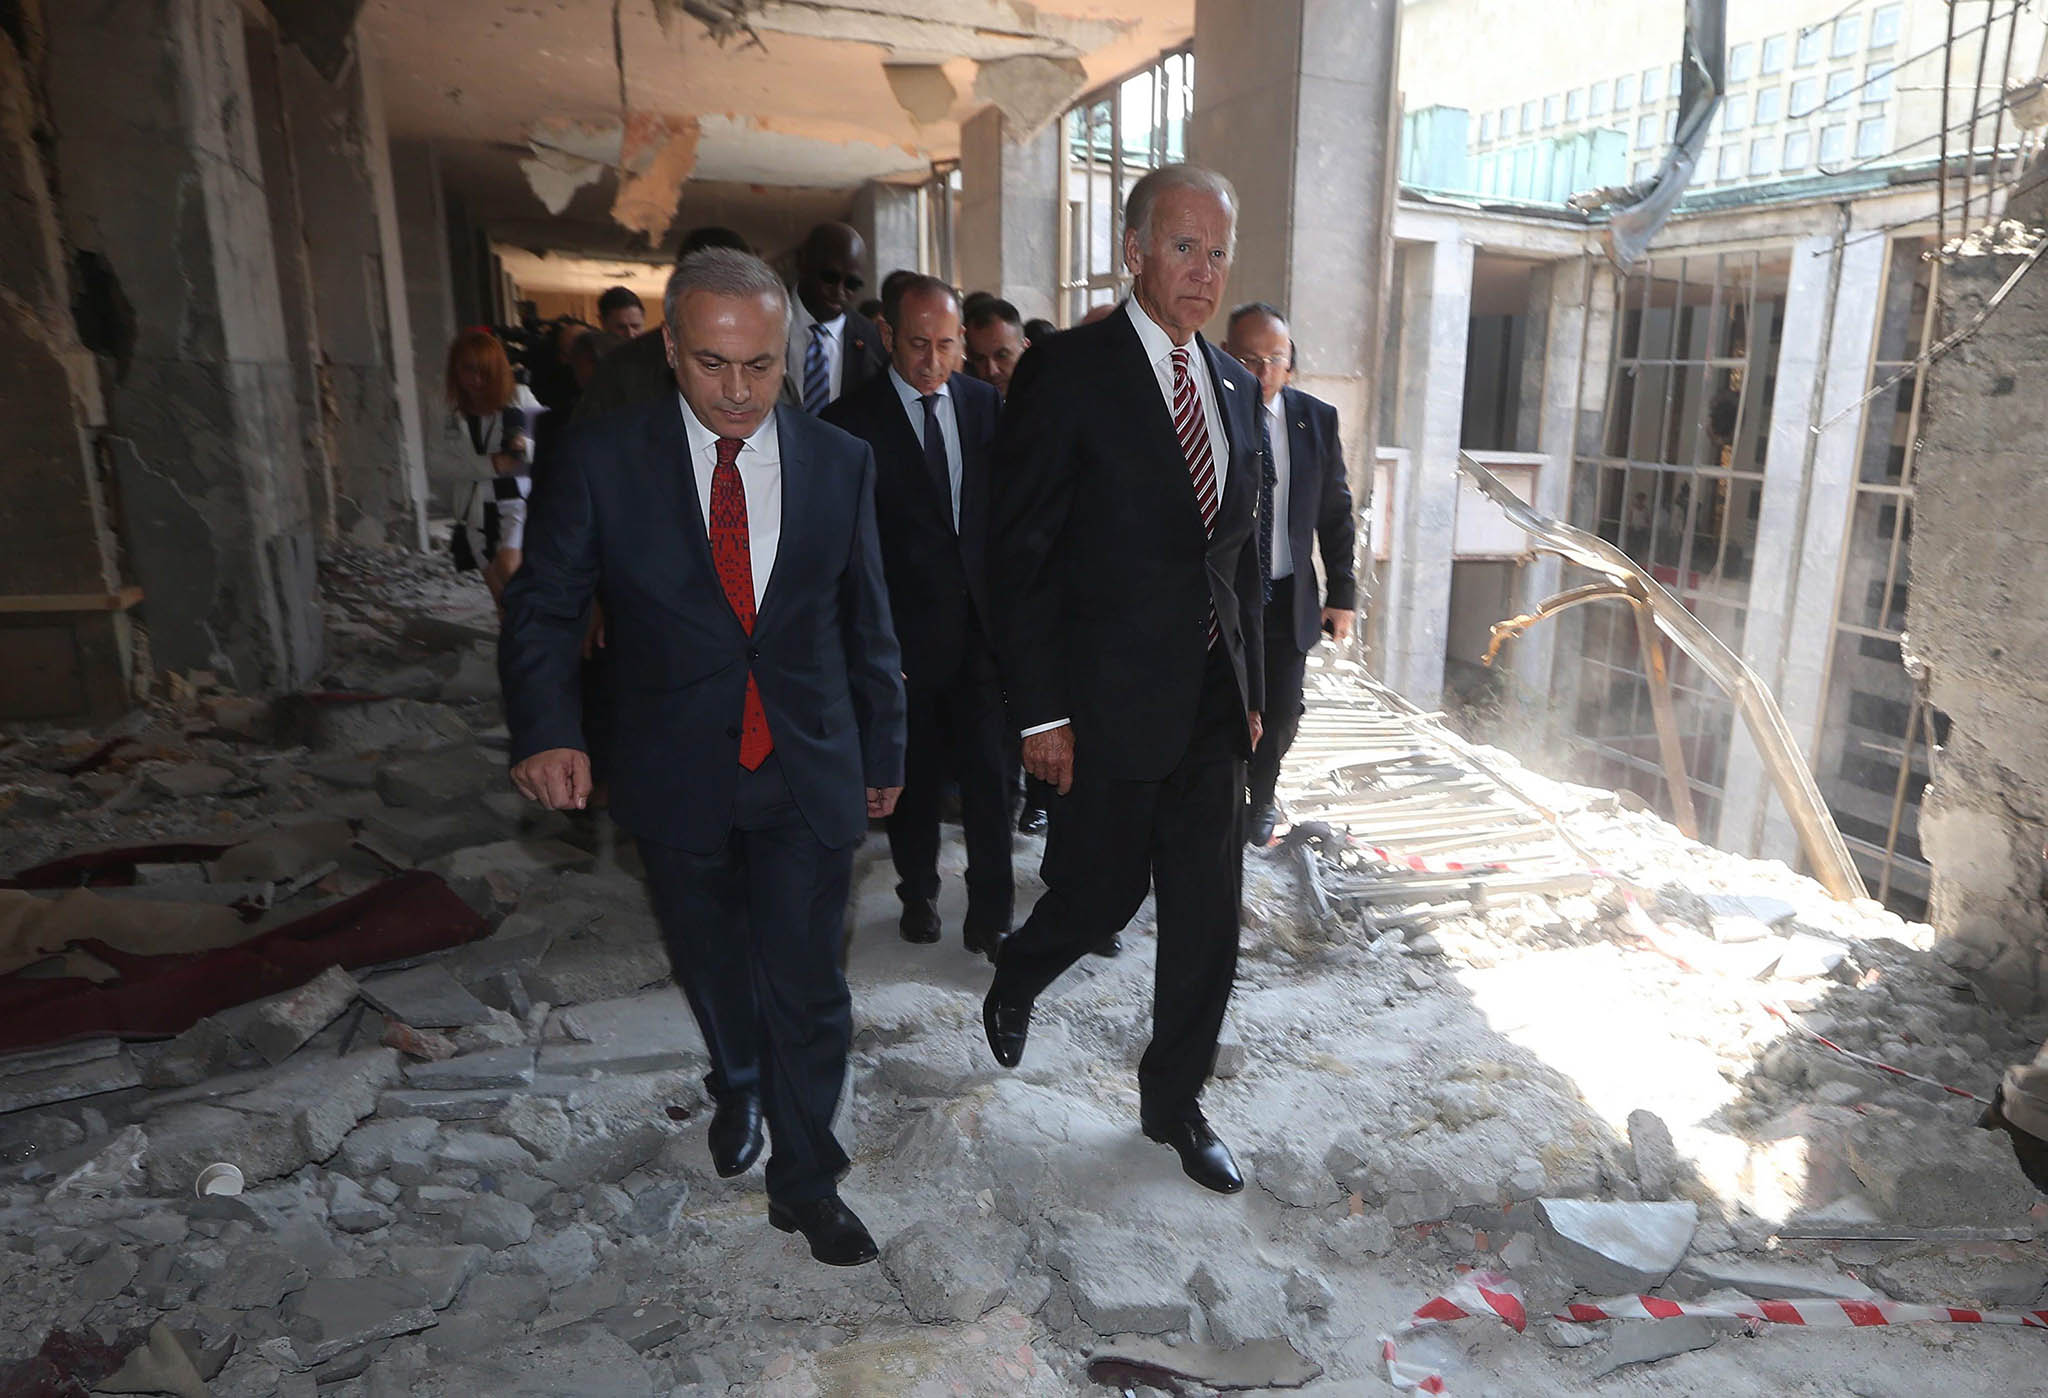 U.S Vice President Joe Biden (R) visits a destroyed part of the Turkish Parliament in Ankara, Turkey, 24 August 2016. Biden is on a one day visit to Turkey during which it is expected that the extradition of Fethullah Gulen will be one of the main topics. Turkey had requested the extradition of Gulen, whom they believe is the mastermind behind a failed coup on 15 July.  EPA/STR